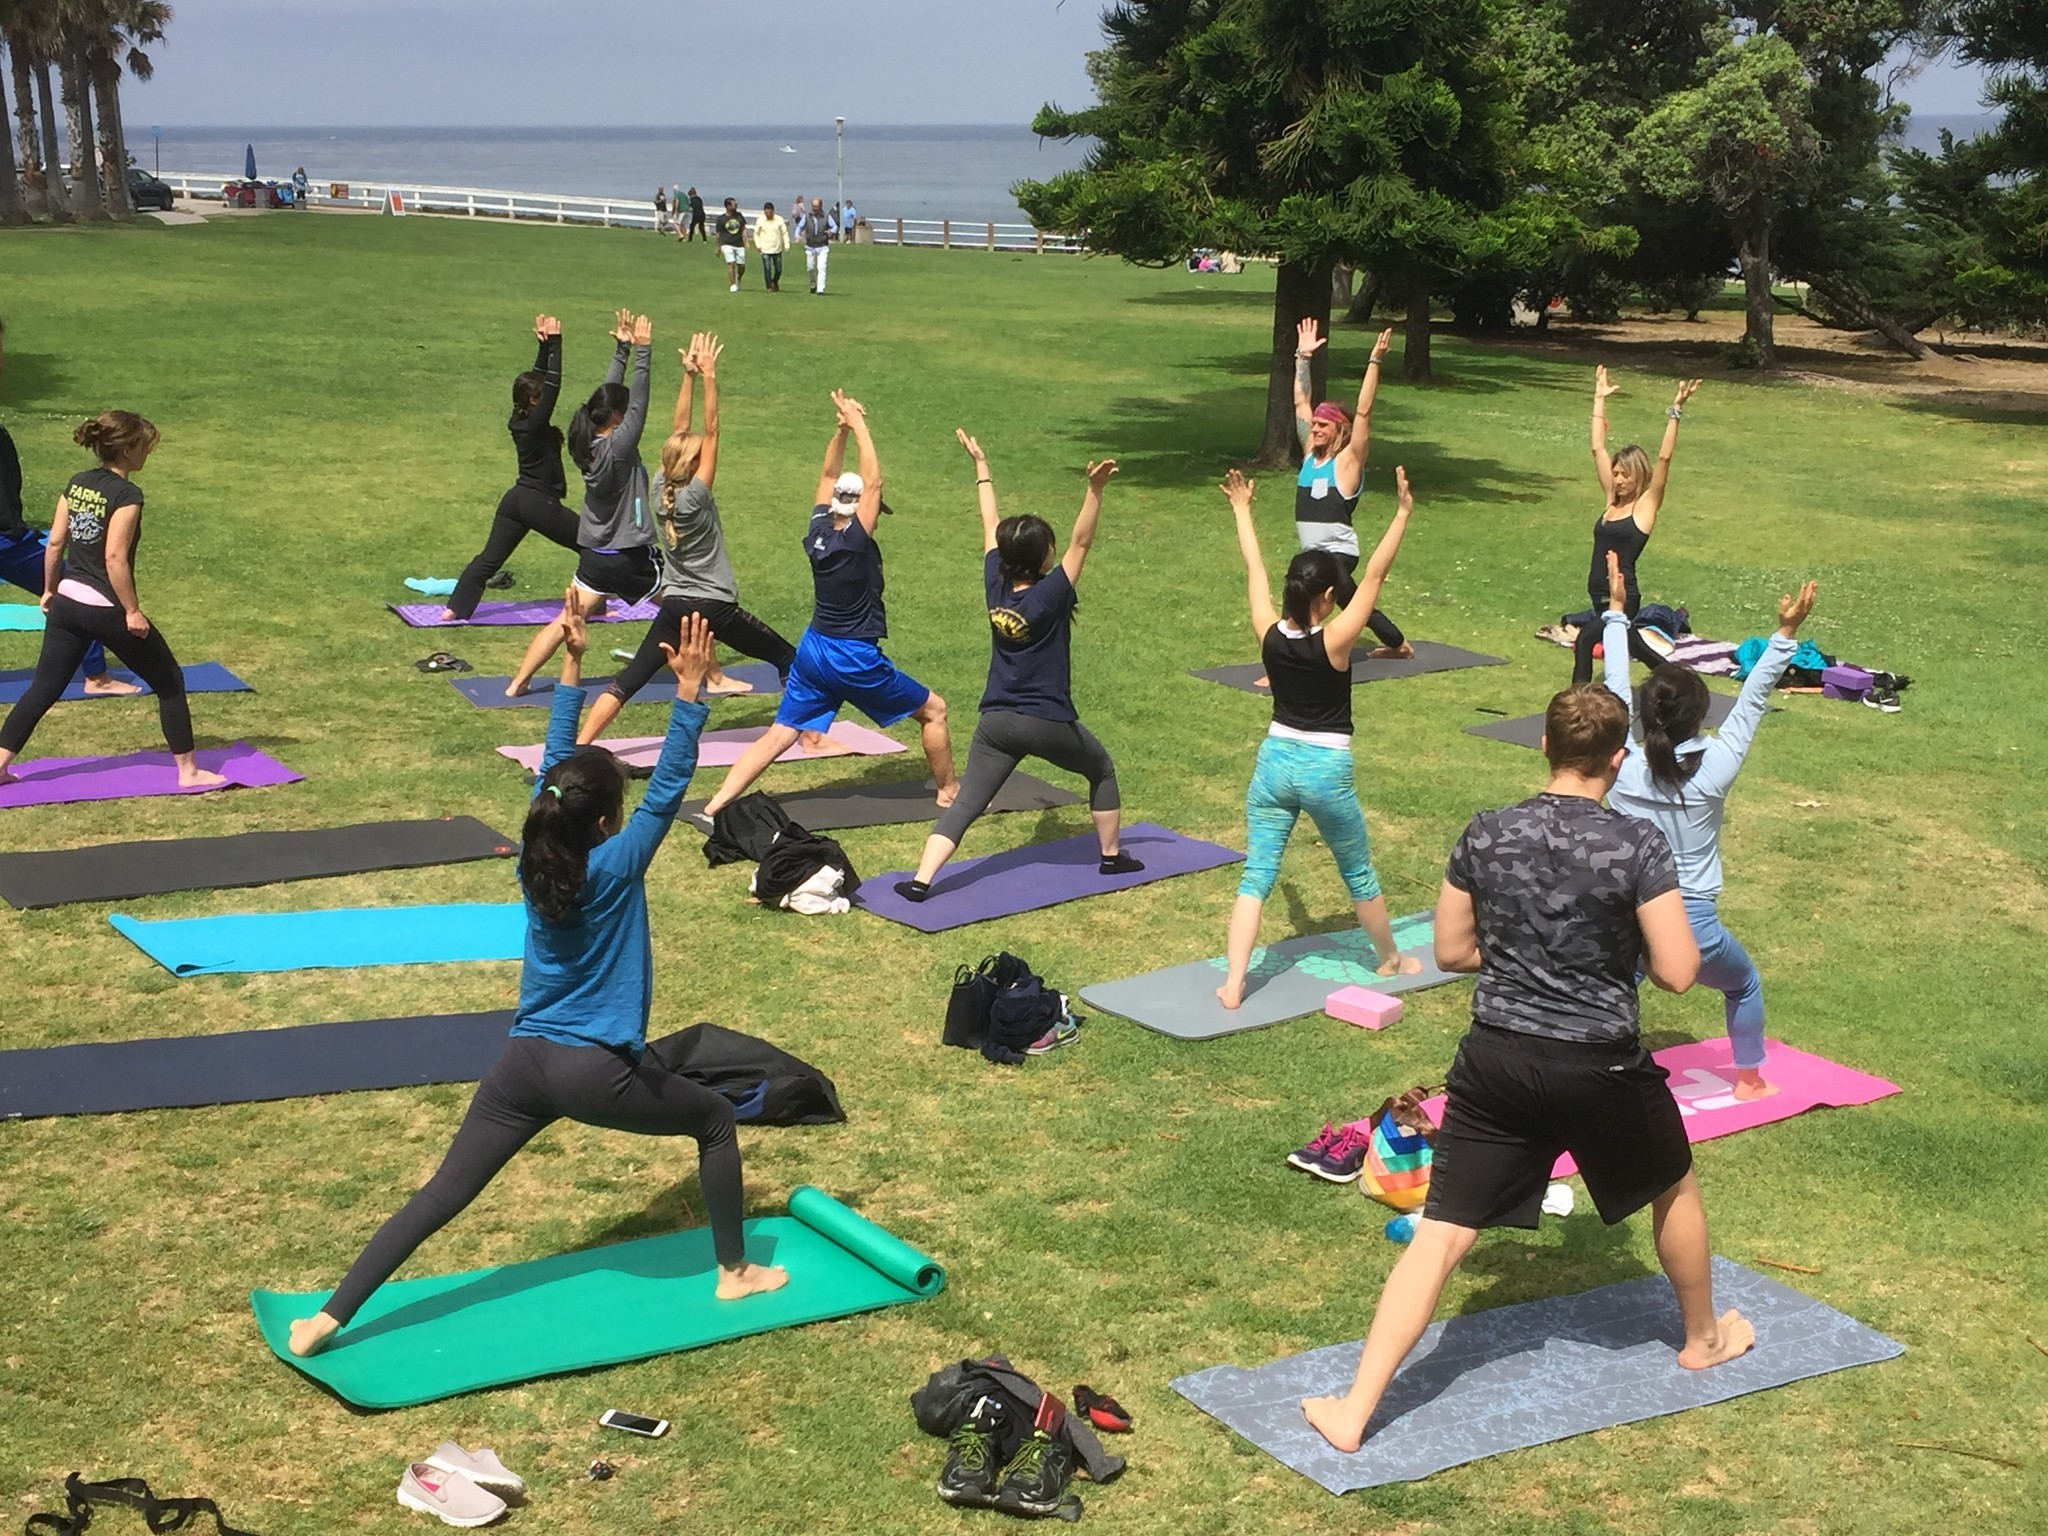 Martyn and Astrid lead about 20 yogis in practice together during a free Sunday-morning Meetup group in Scripps Park.